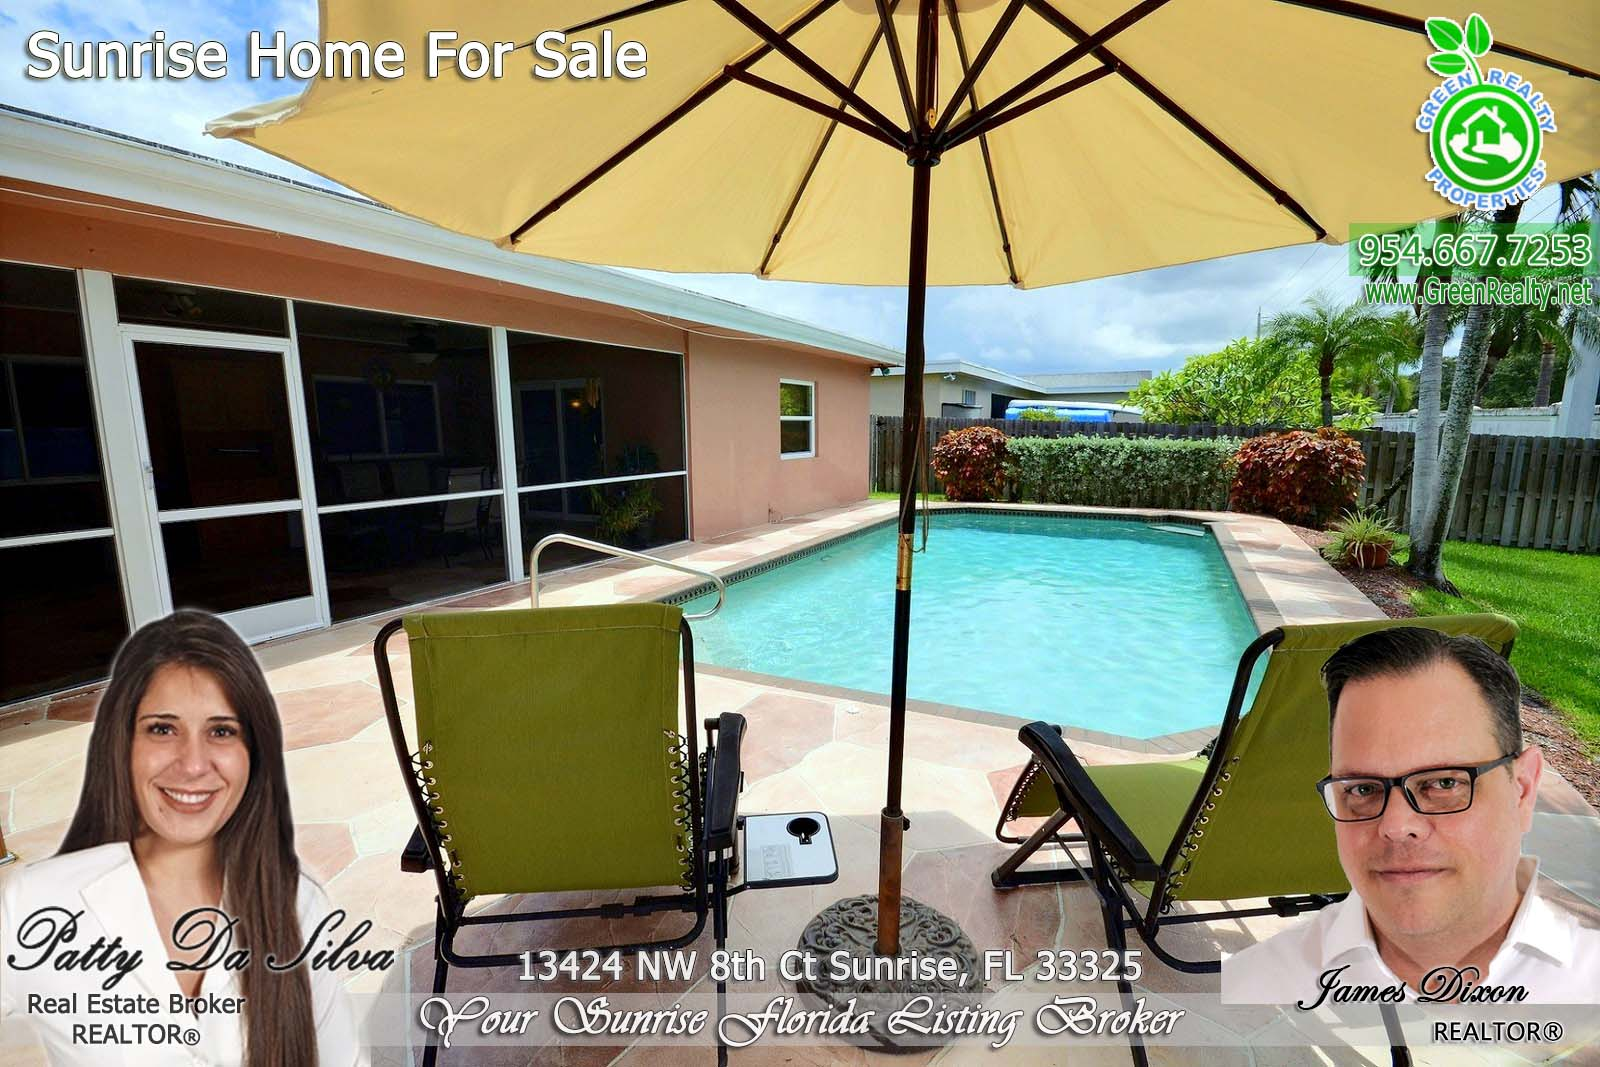 27 Homes For Sale in Sunrise Florida (2)